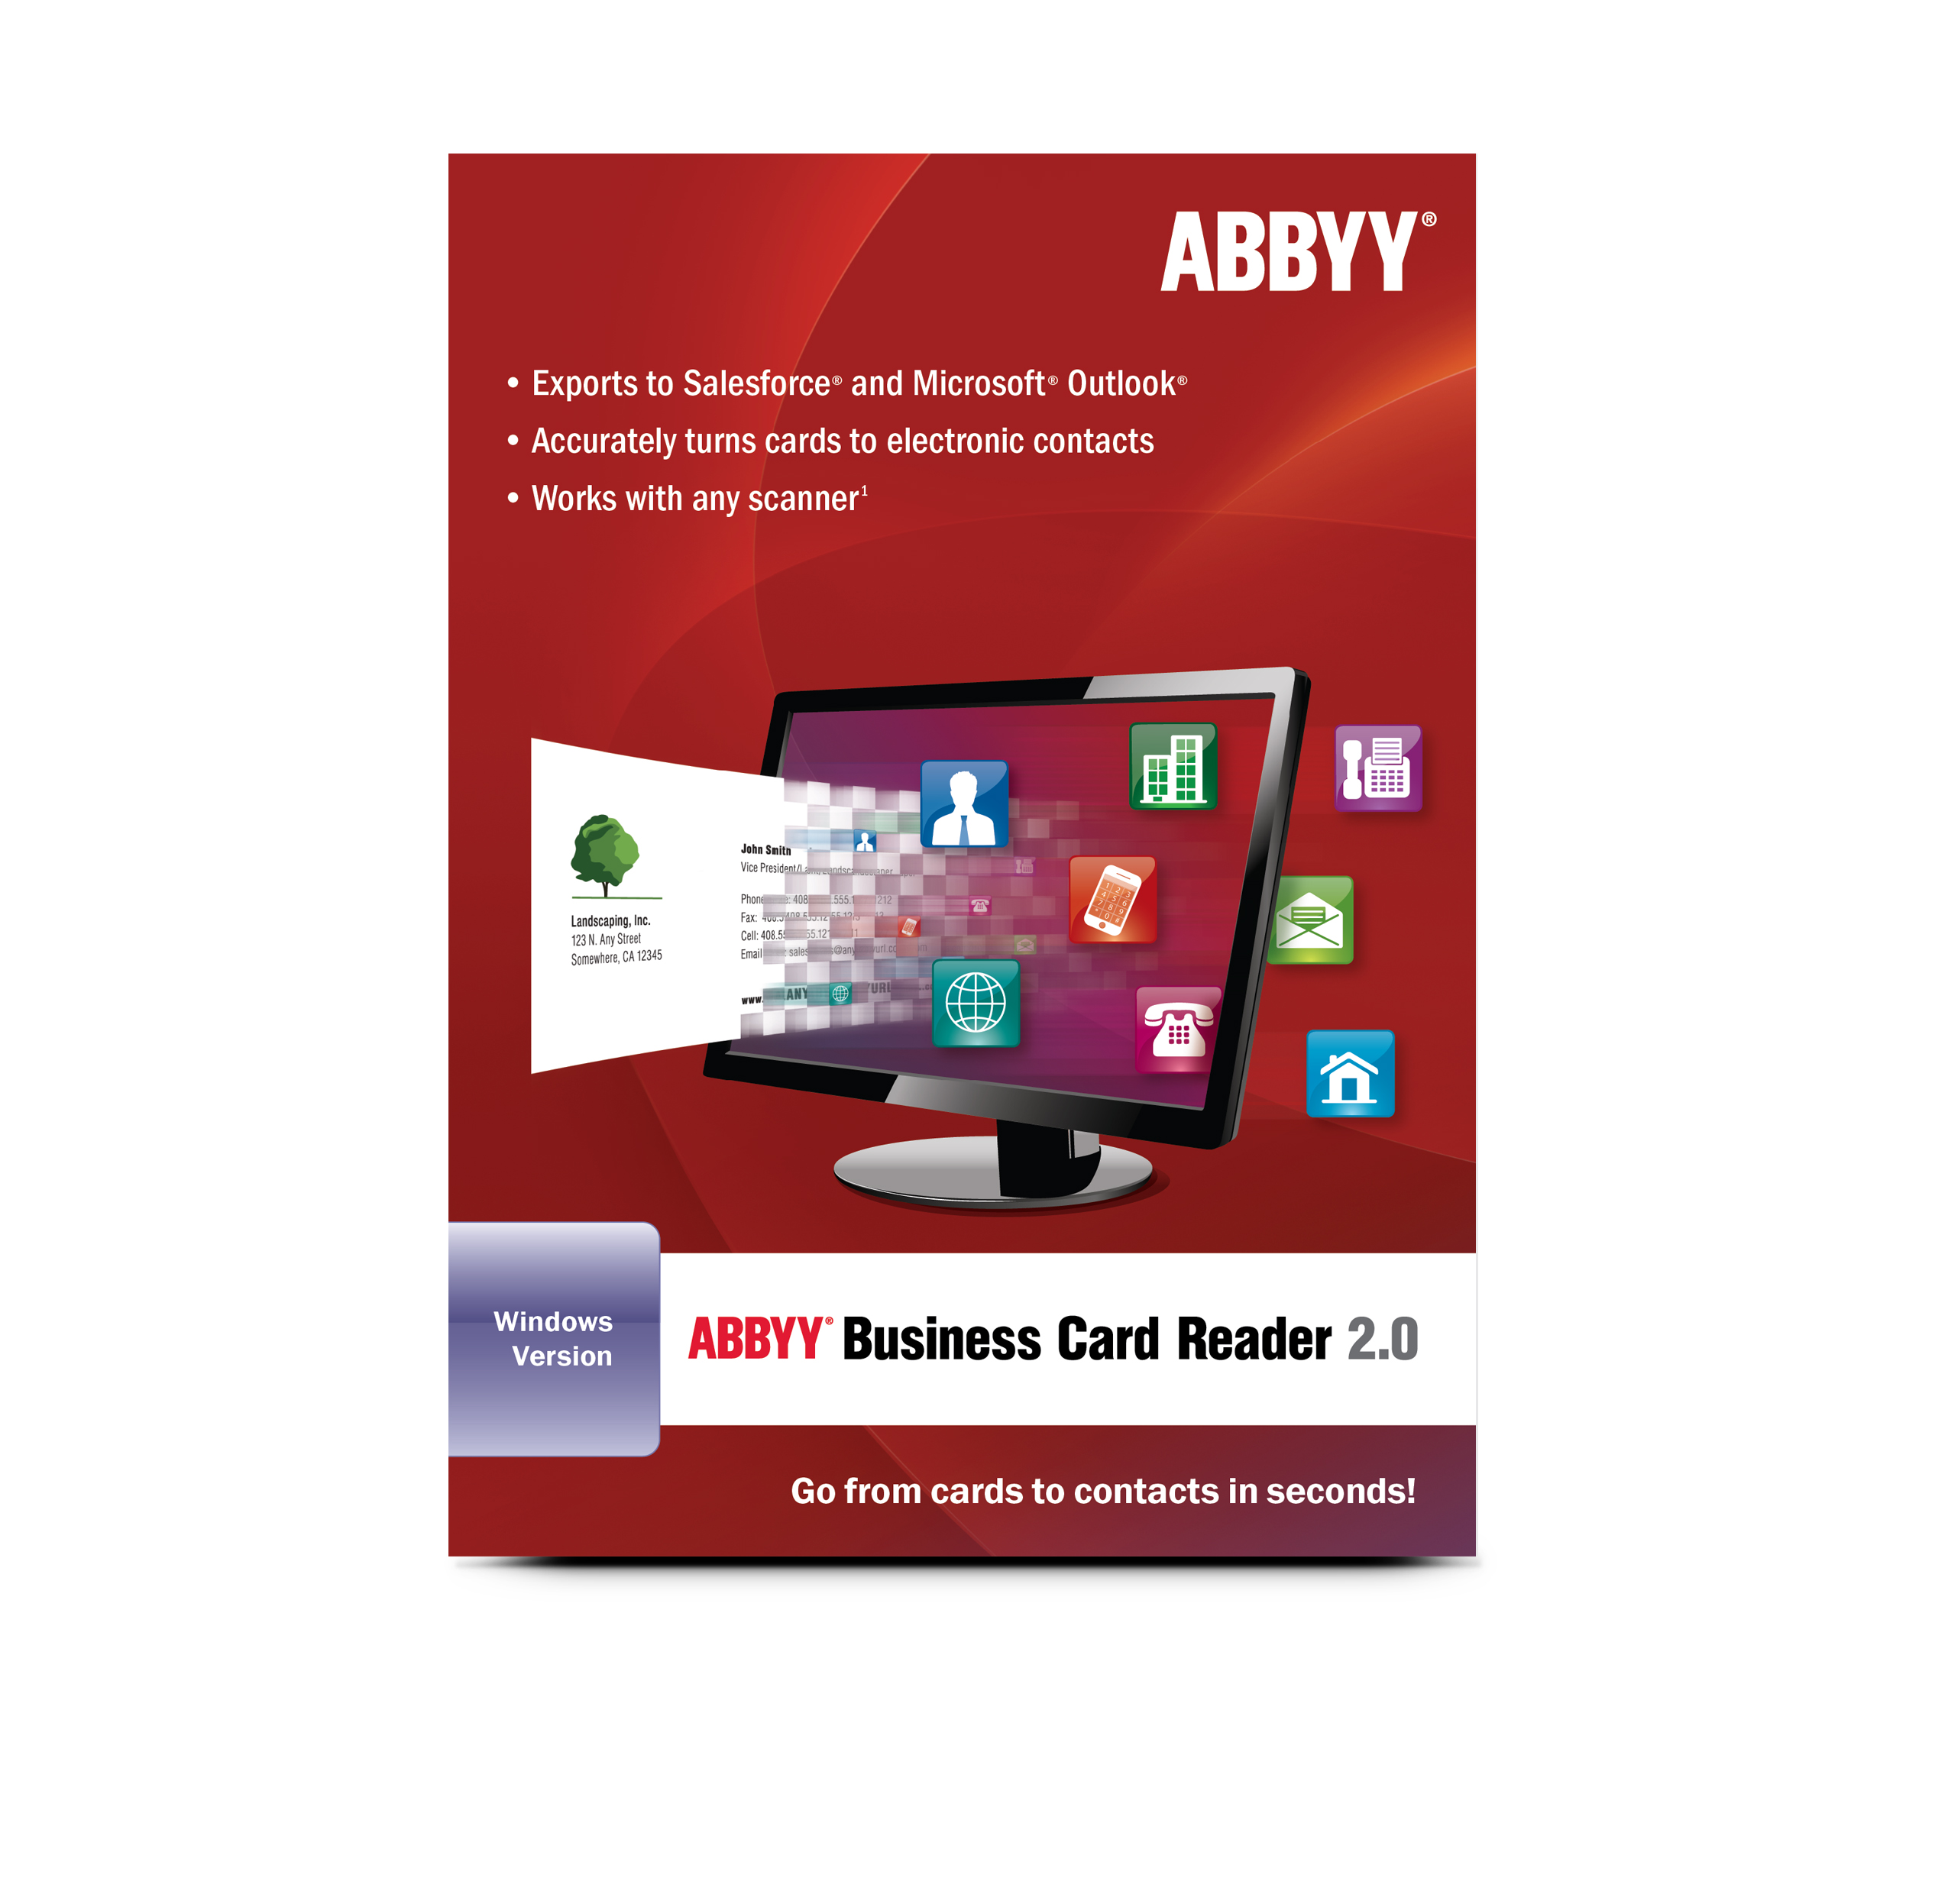 abbyy business card reader [ ] software